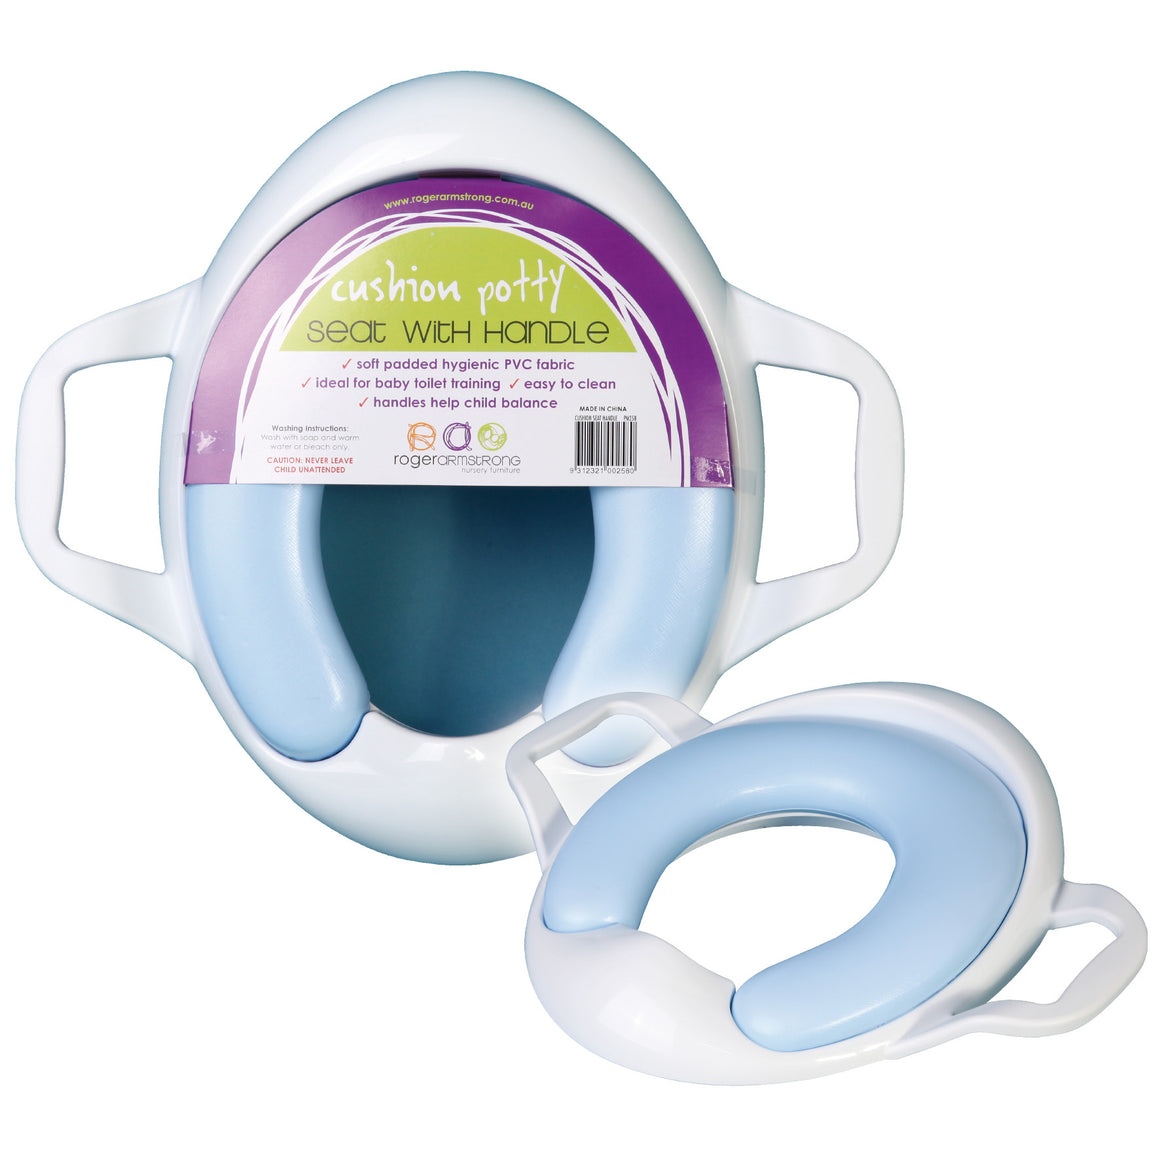 Cushion Potty Toilet Seat with handle